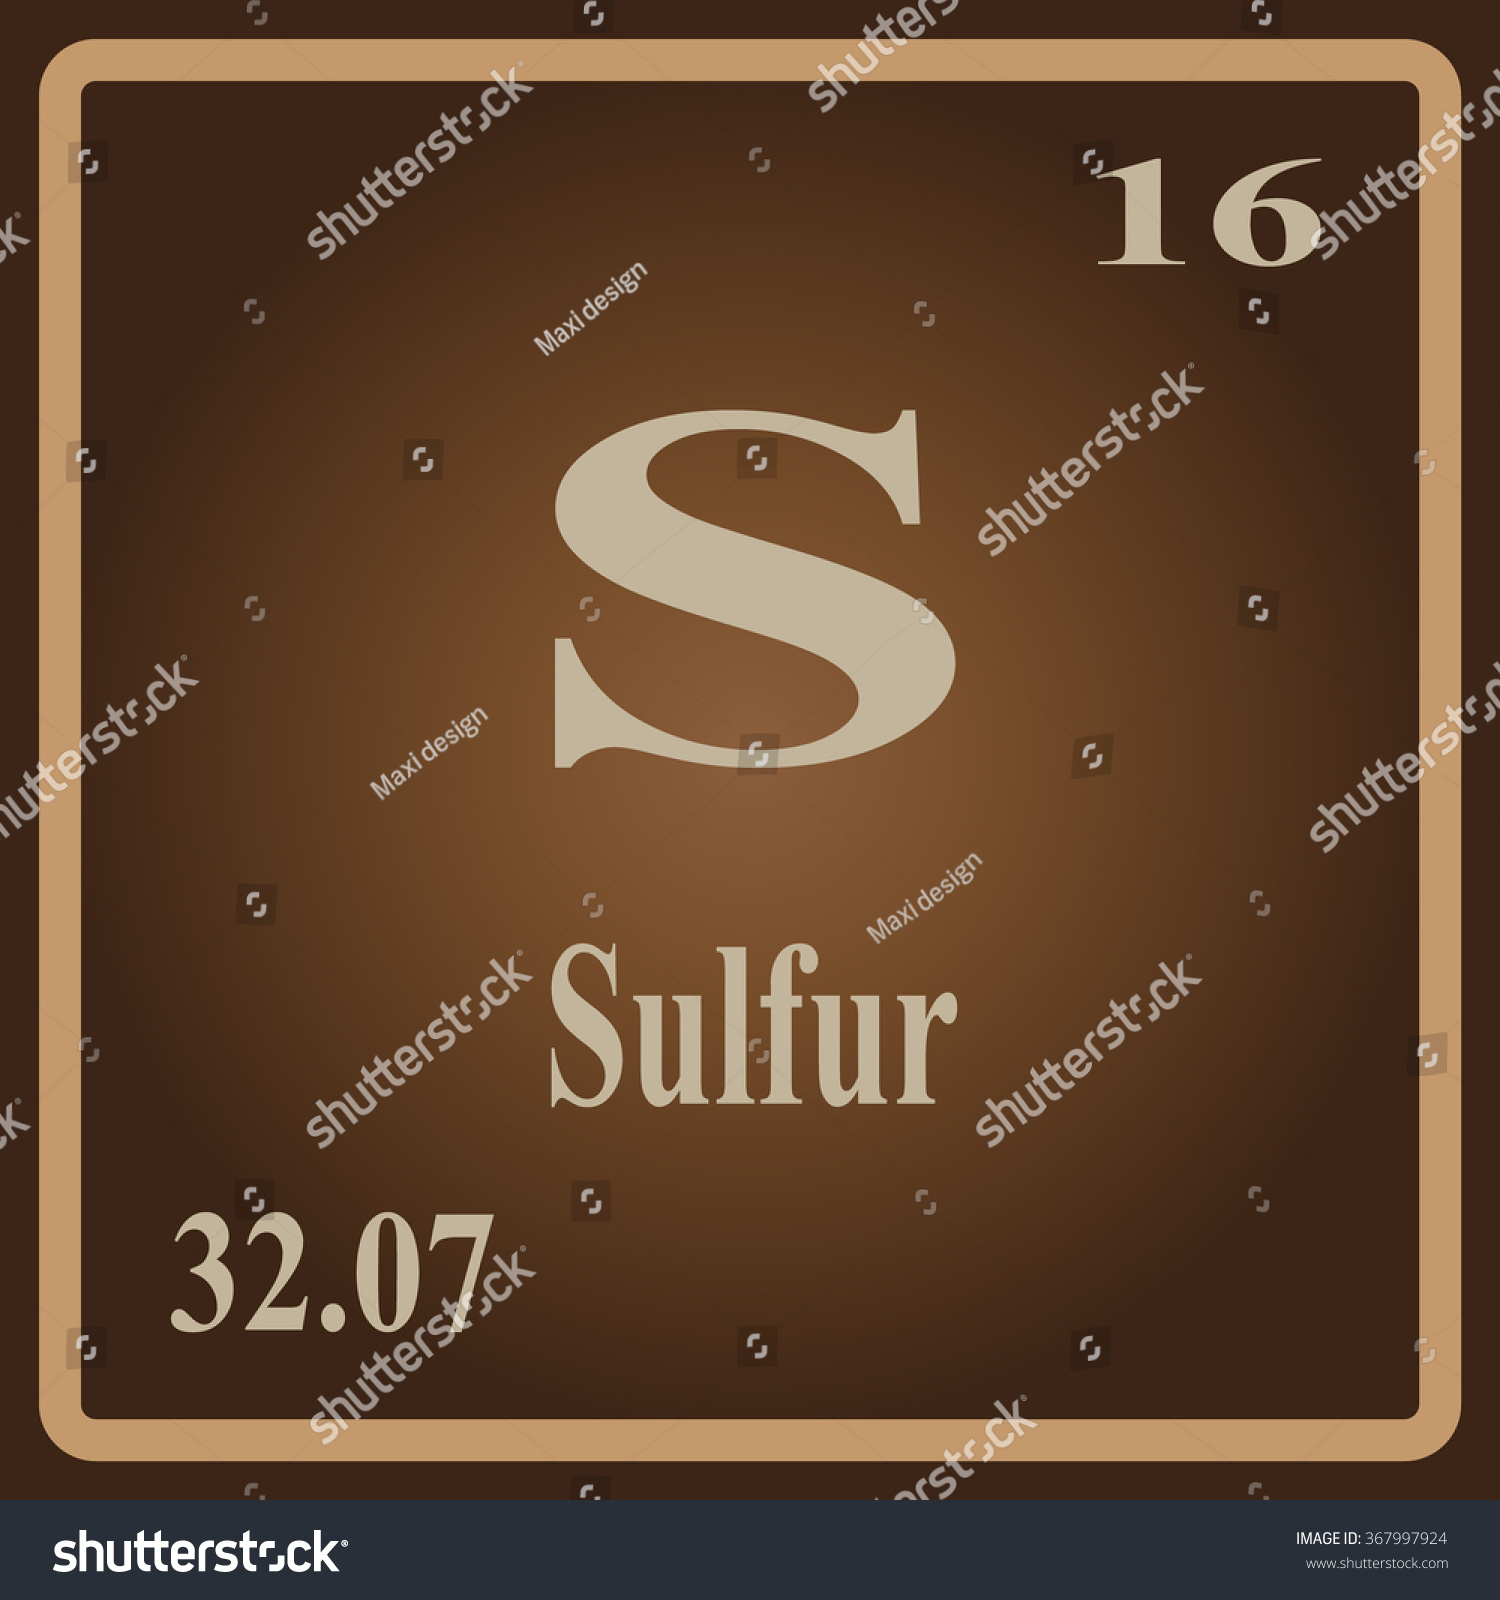 Periodic table elements sulfur stock vector 367997924 shutterstock the periodic table of the elements sulfur gamestrikefo Choice Image